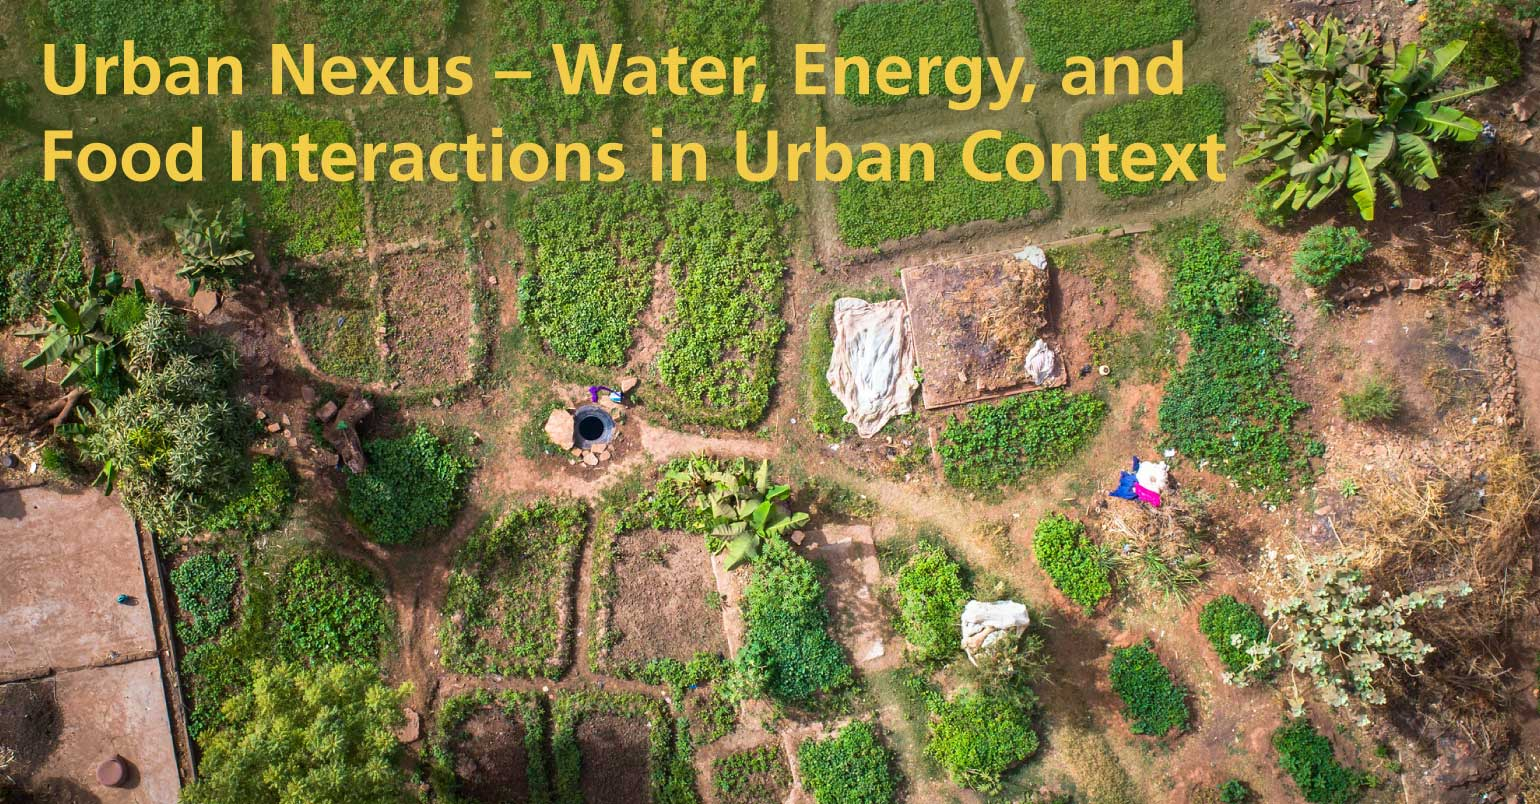 Urban Nexus – Water, Energy, and Food Interactions in Urban Context